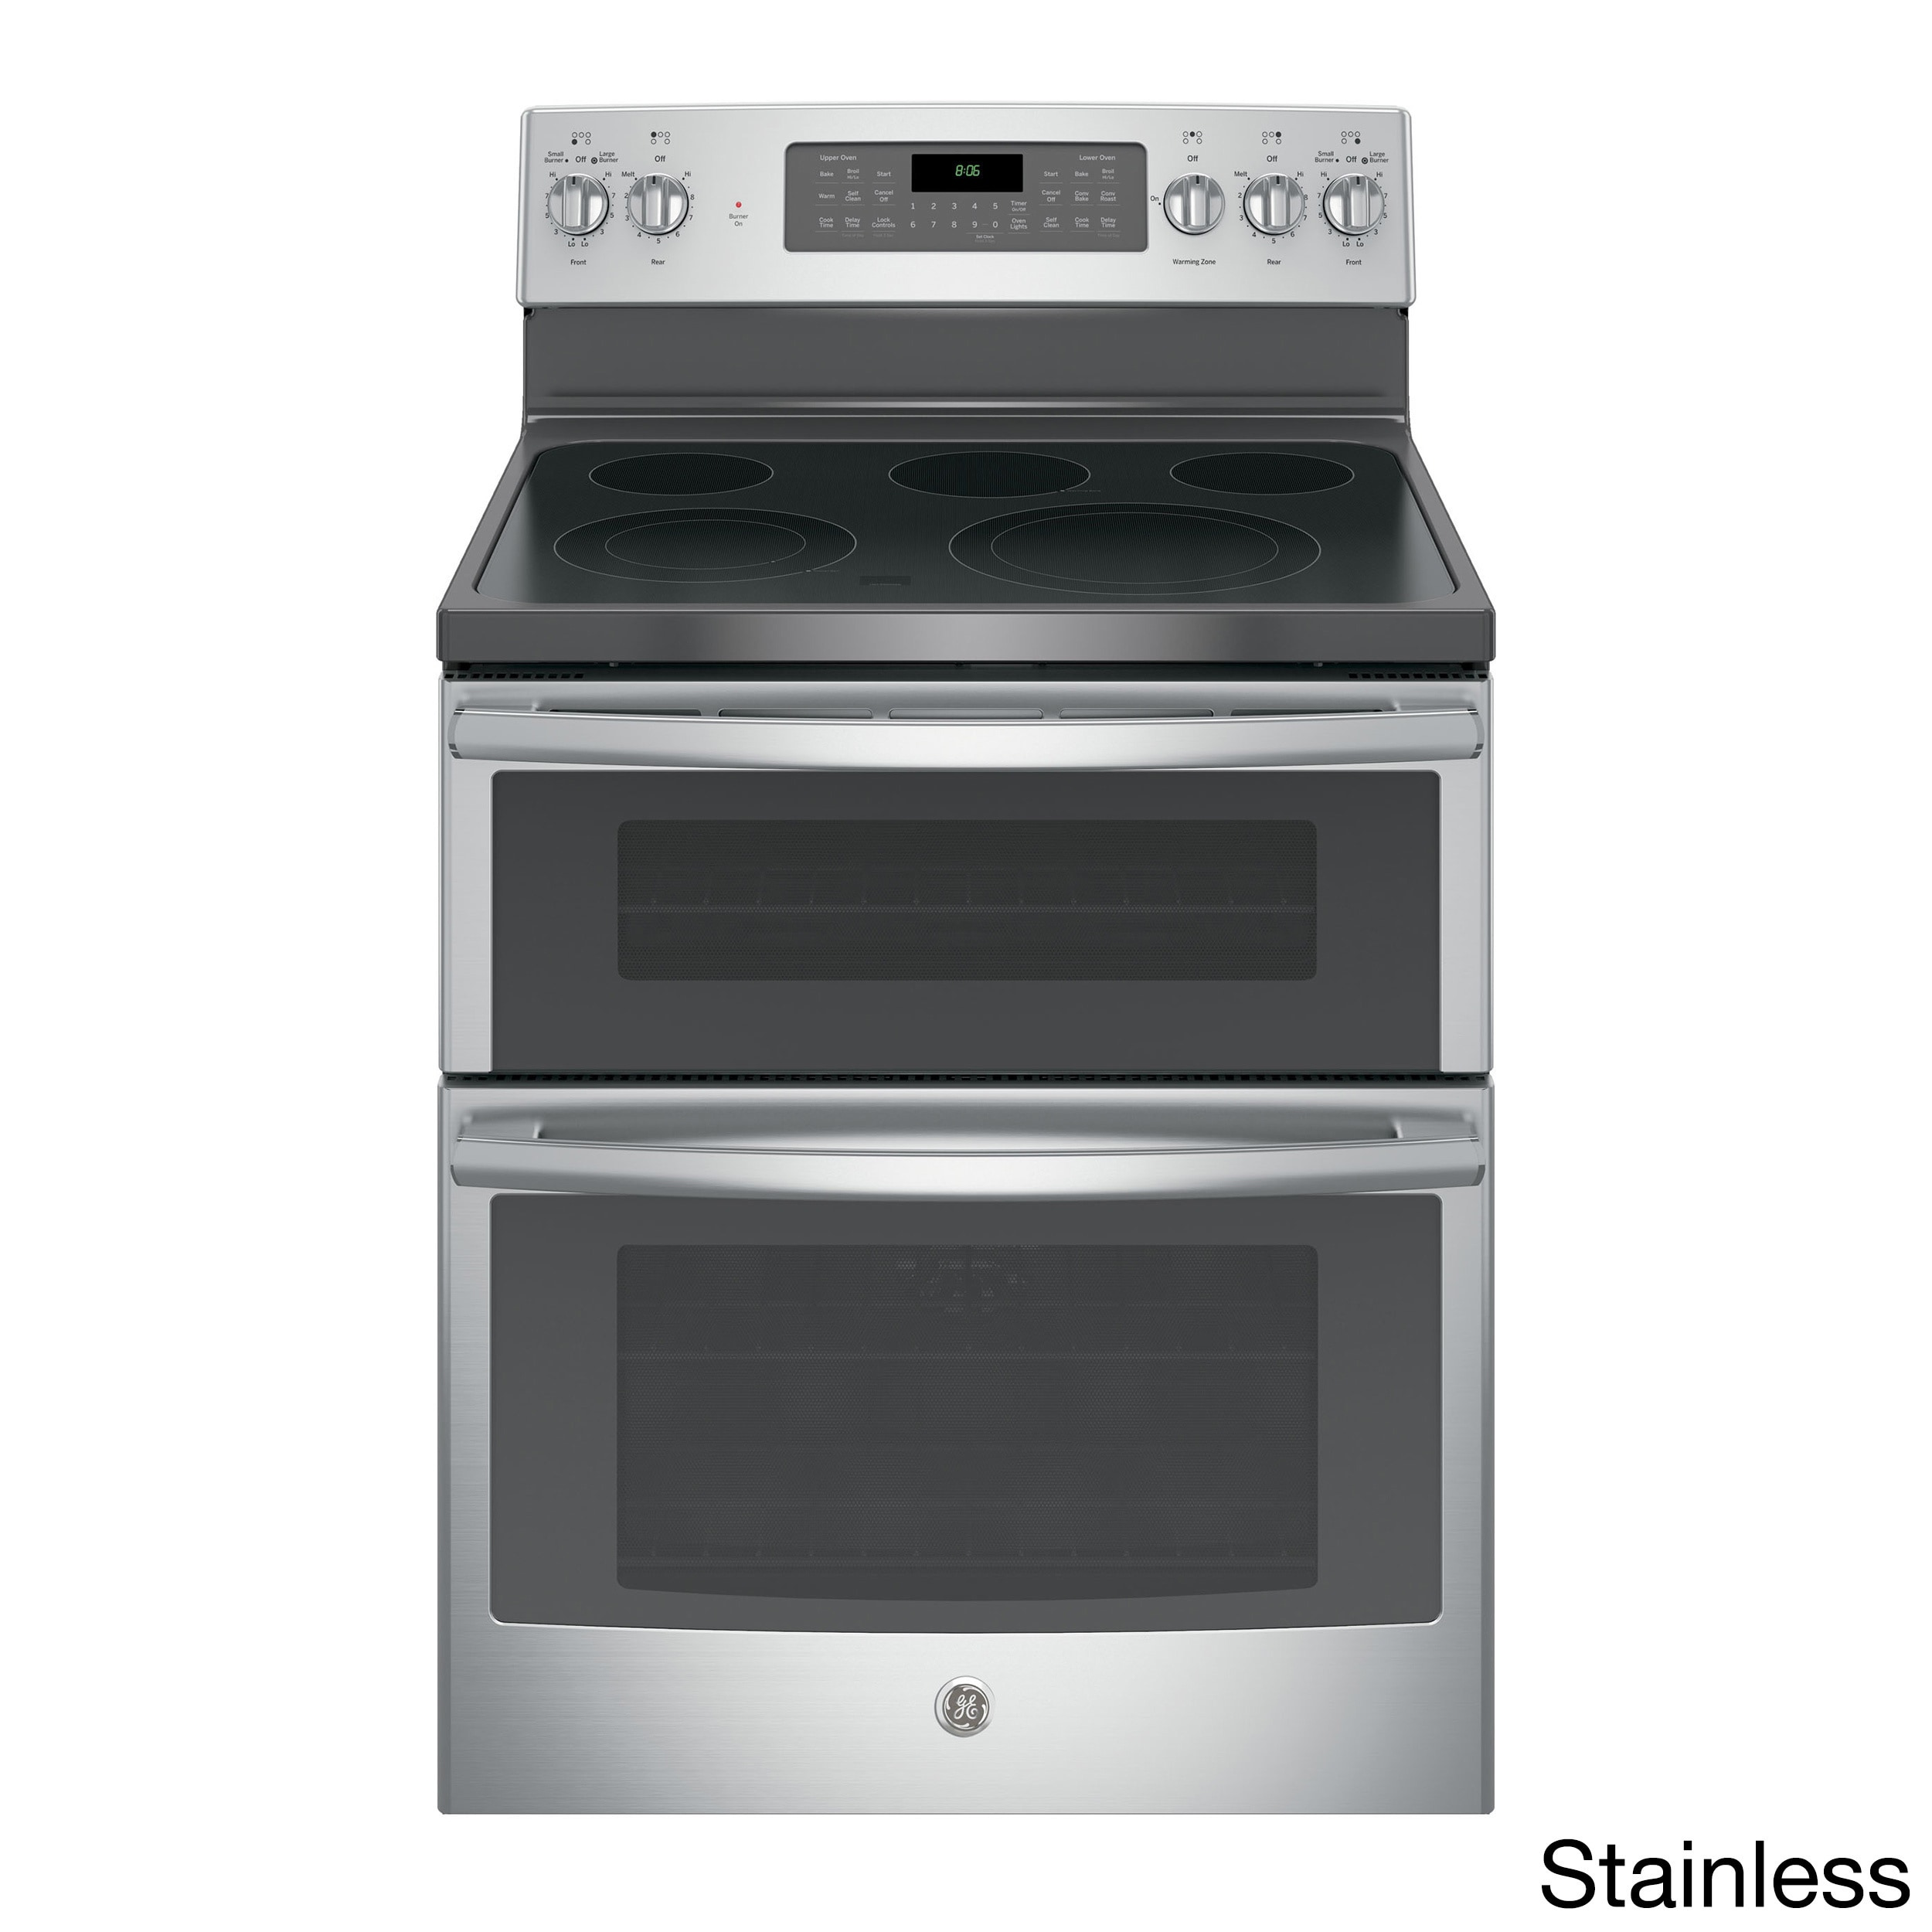 GE 30-inch Stainless Steel Electric Double Oven with Convection Range Stainless Steel